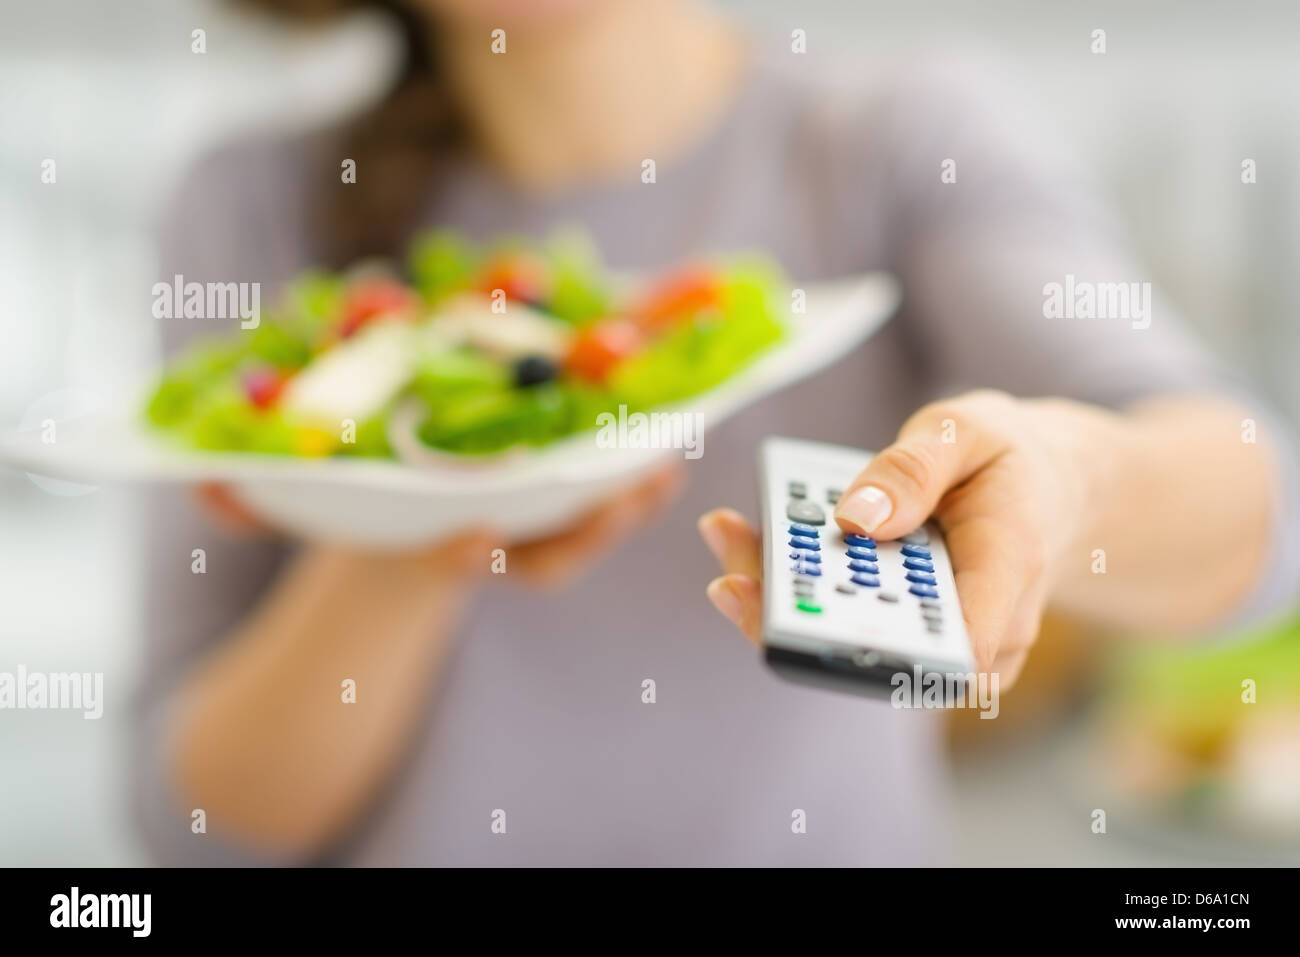 Closeup on tv remote control and fresh salad in hand of young woman - Stock Image